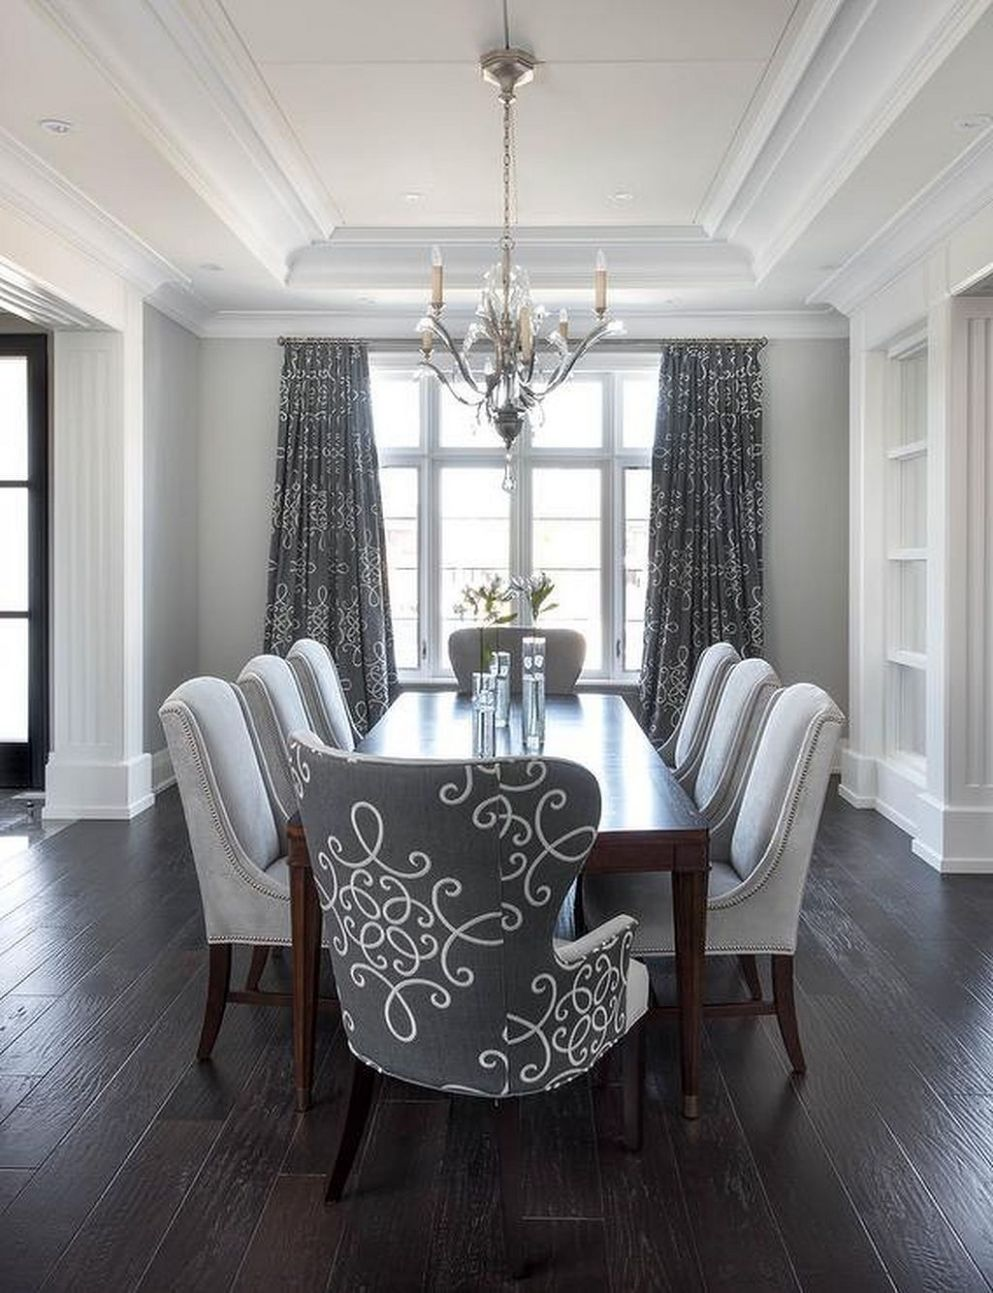 9 Dining Room Arrangement Ideas 9 | Dining room drapes, Dining ..